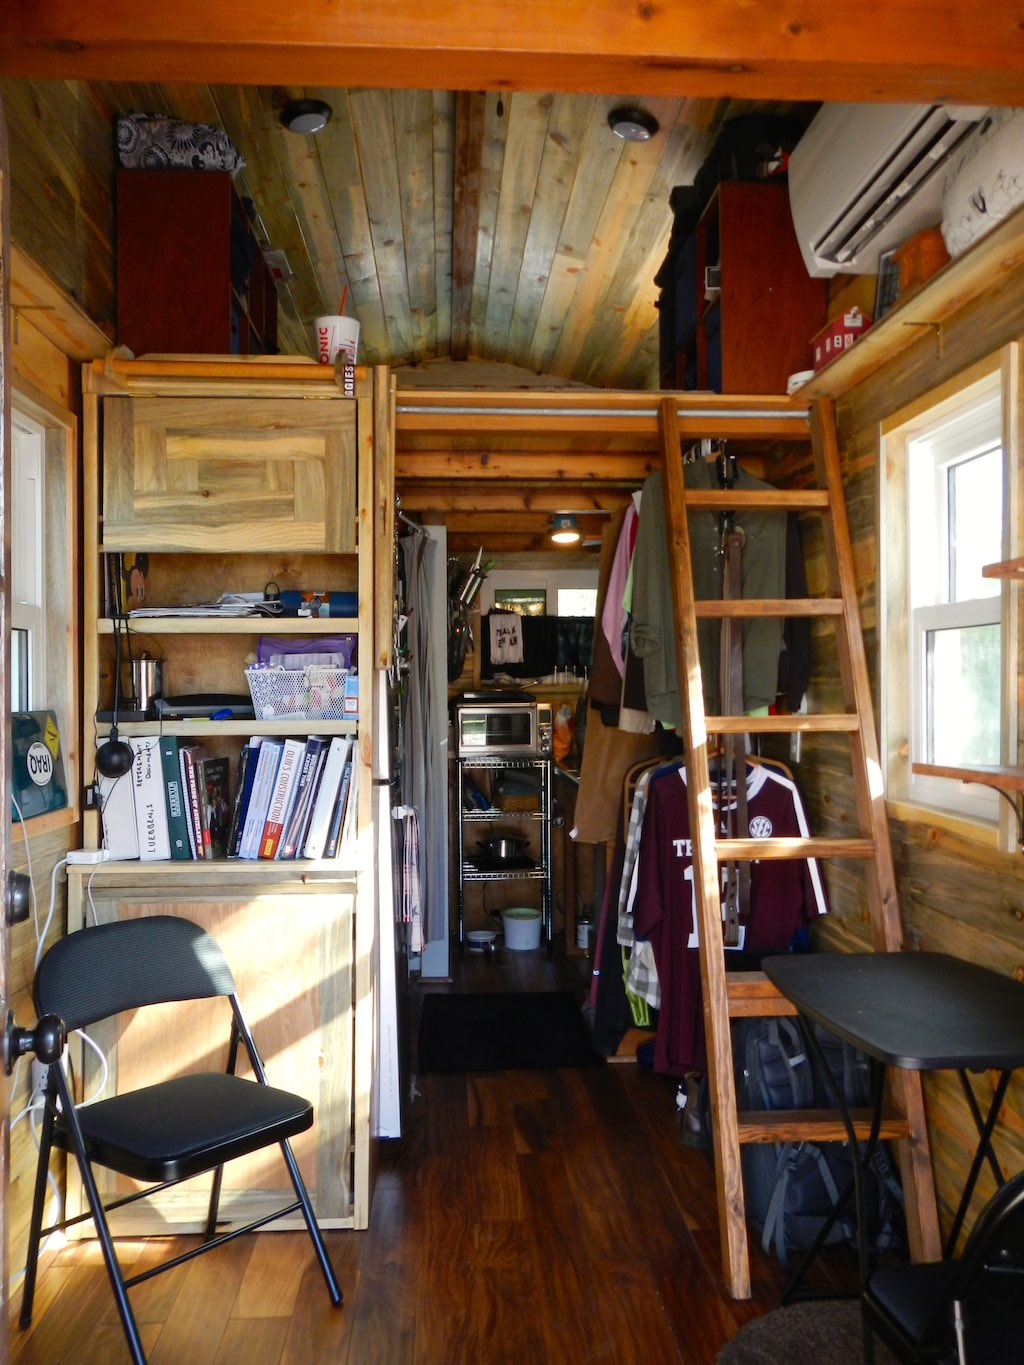 stephanis-tiny-house-college-student-6